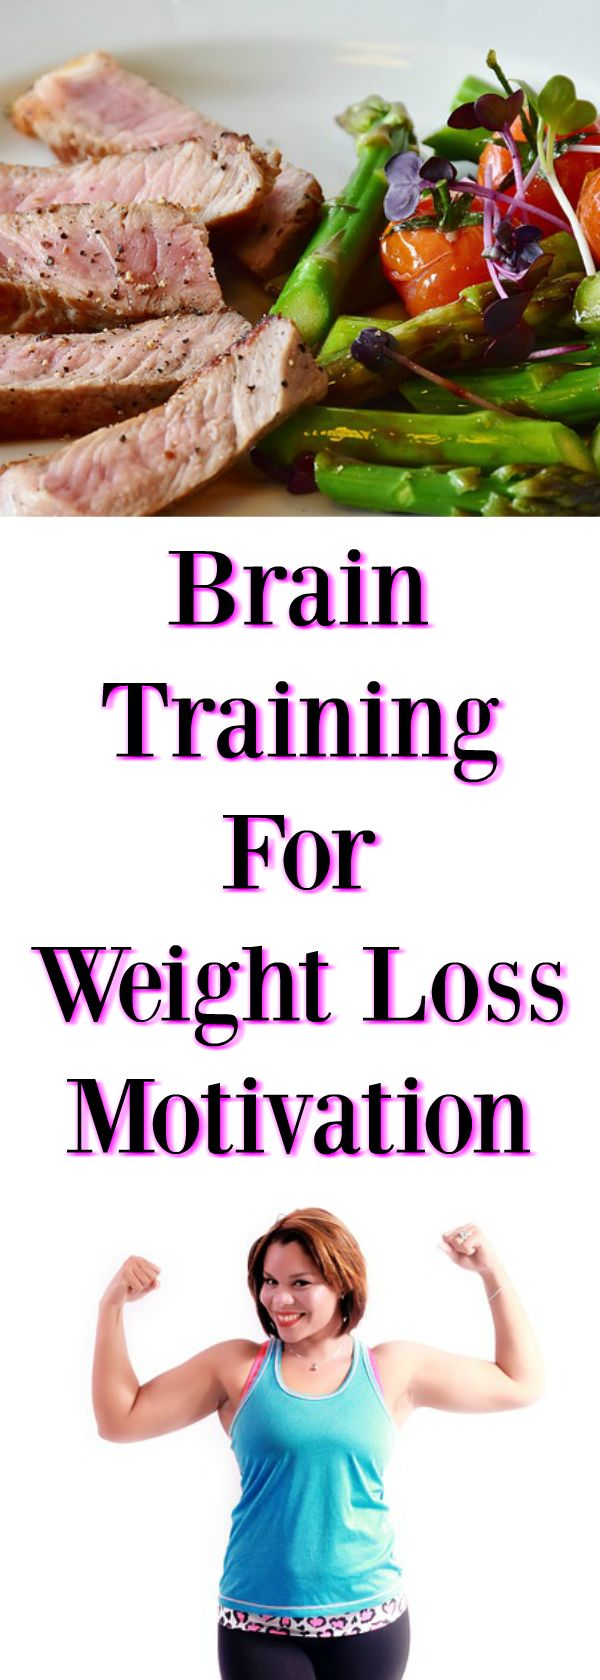 How to do brain training for weight loss motivation. These weight loss motivation tips will help you lose weight fast, especially if used with a healthy weight loss program.